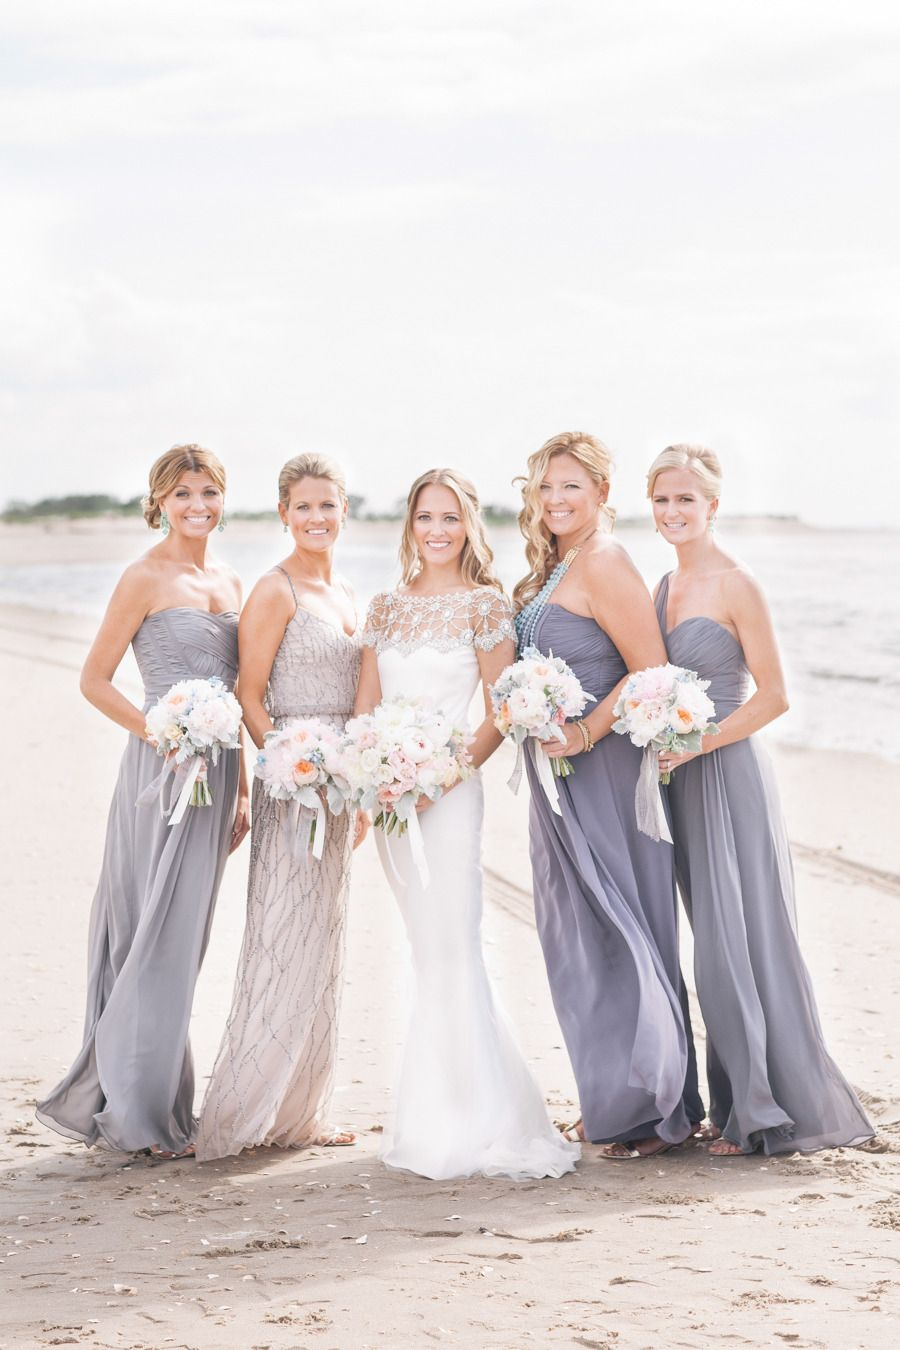 Romantic New York Wedding At Water S Edge From Kelly Kollar Photography Beach Bridesmaid Dresses Beach Wedding Dress Grey Bridesmaid Dresses